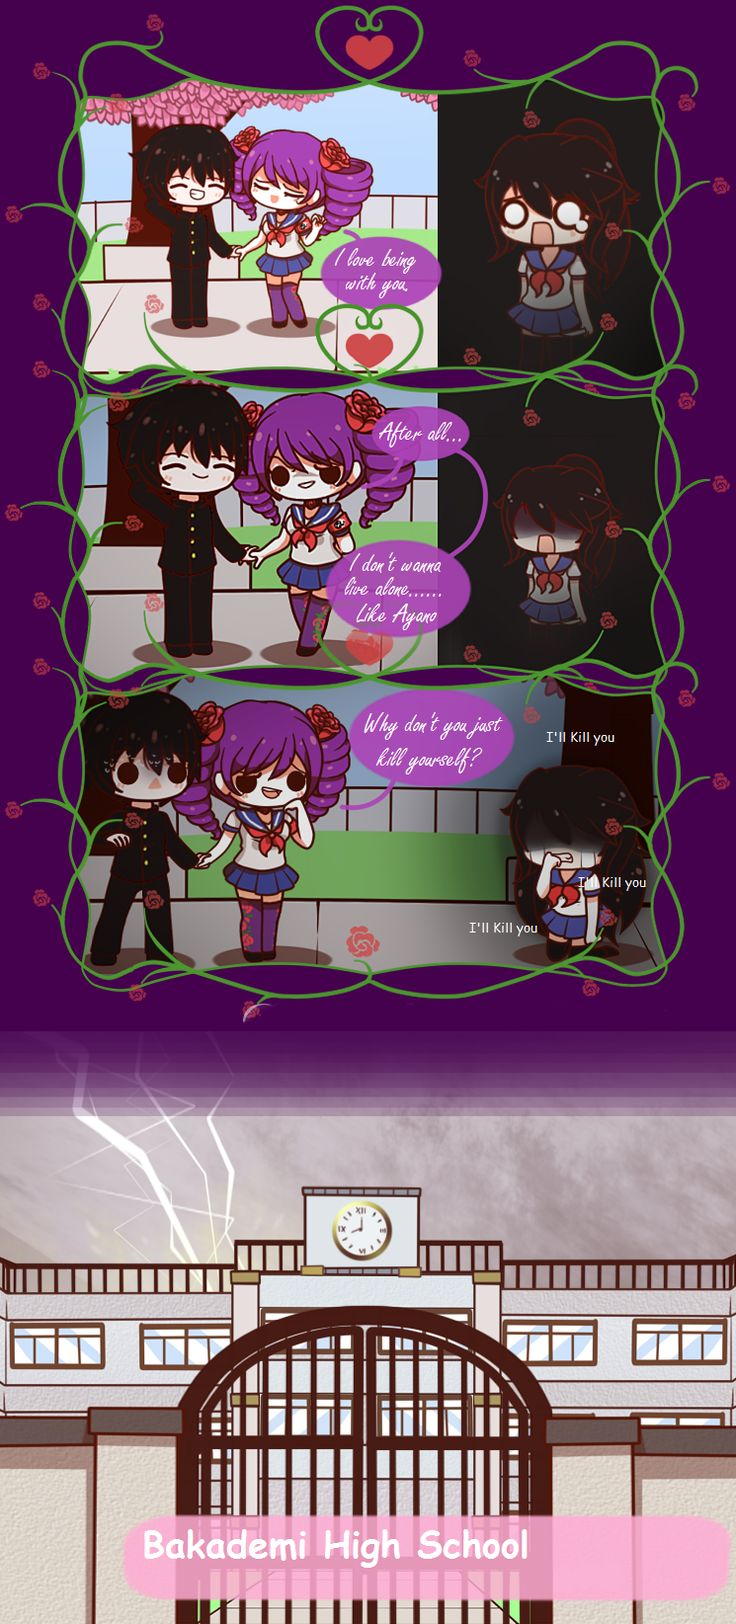 Yandere Comic - Kizana's Happy End by DancerQuartz on DeviantArt